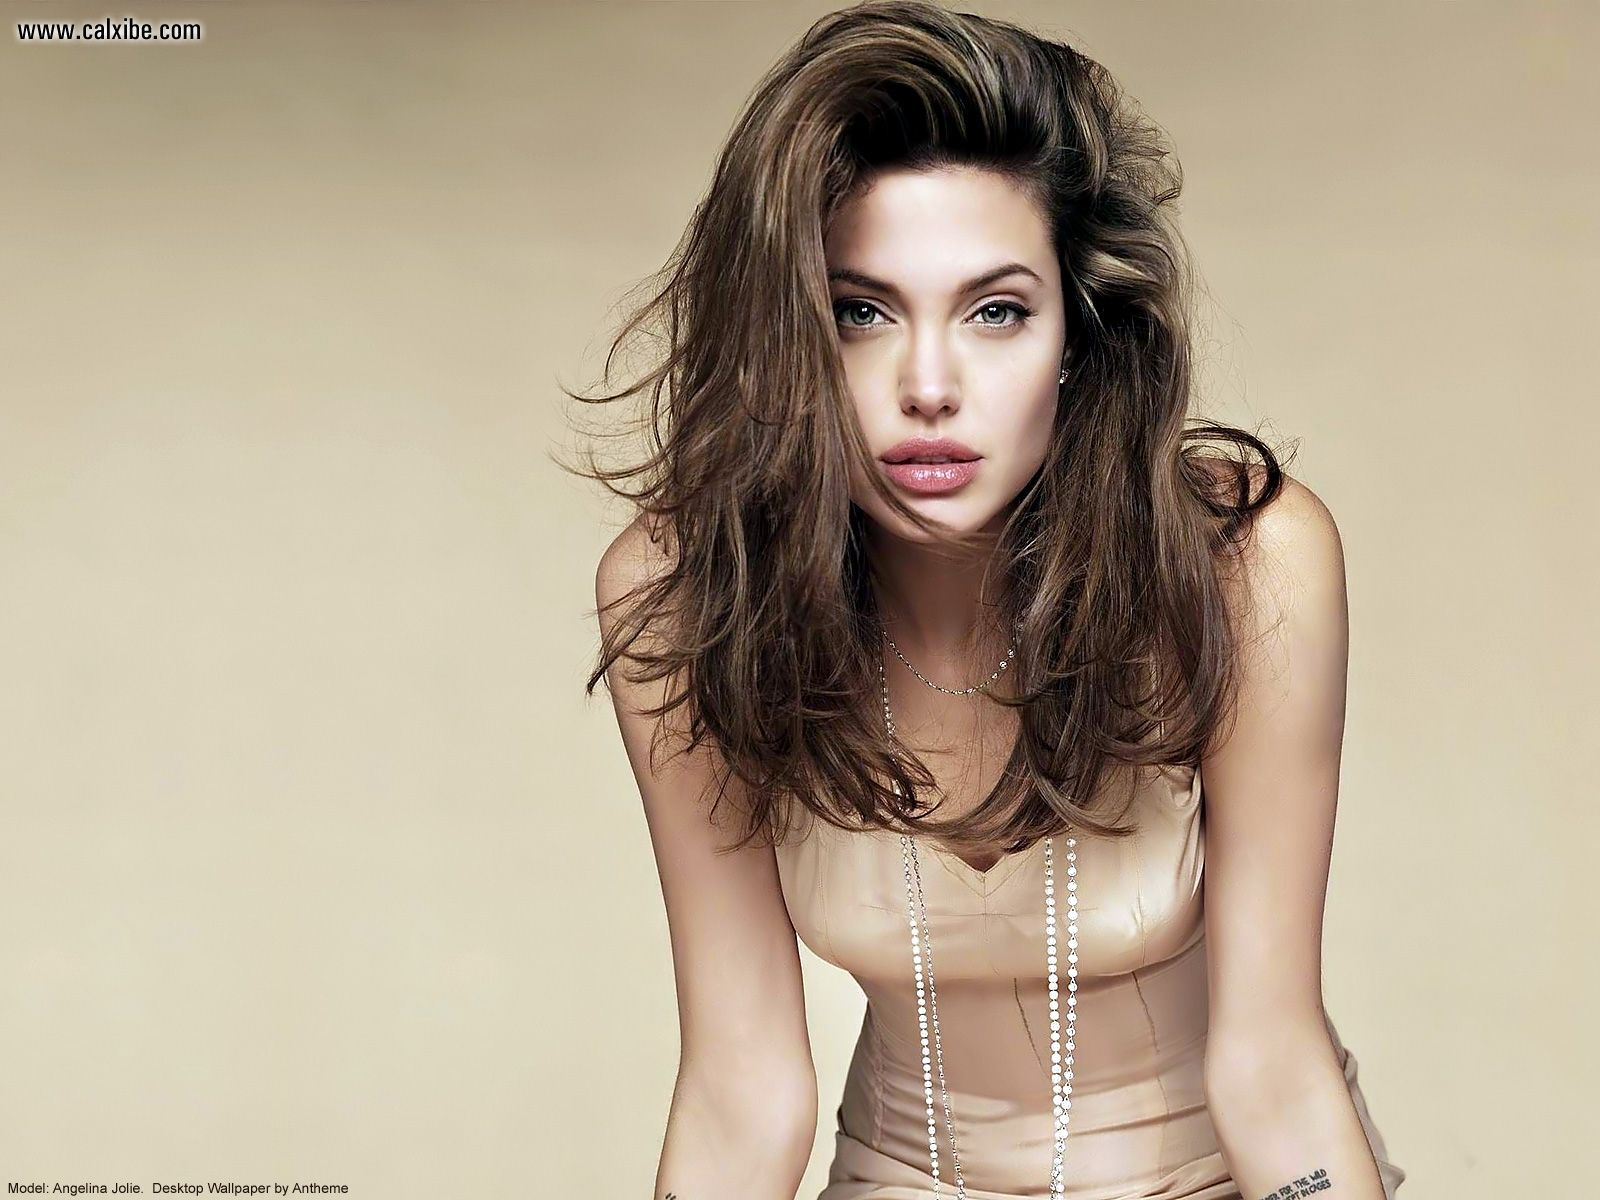 Angelina Jolie wall anth41 free no signup adult chat for mobile. Published on 25.03.2012 by At malhamp, ...